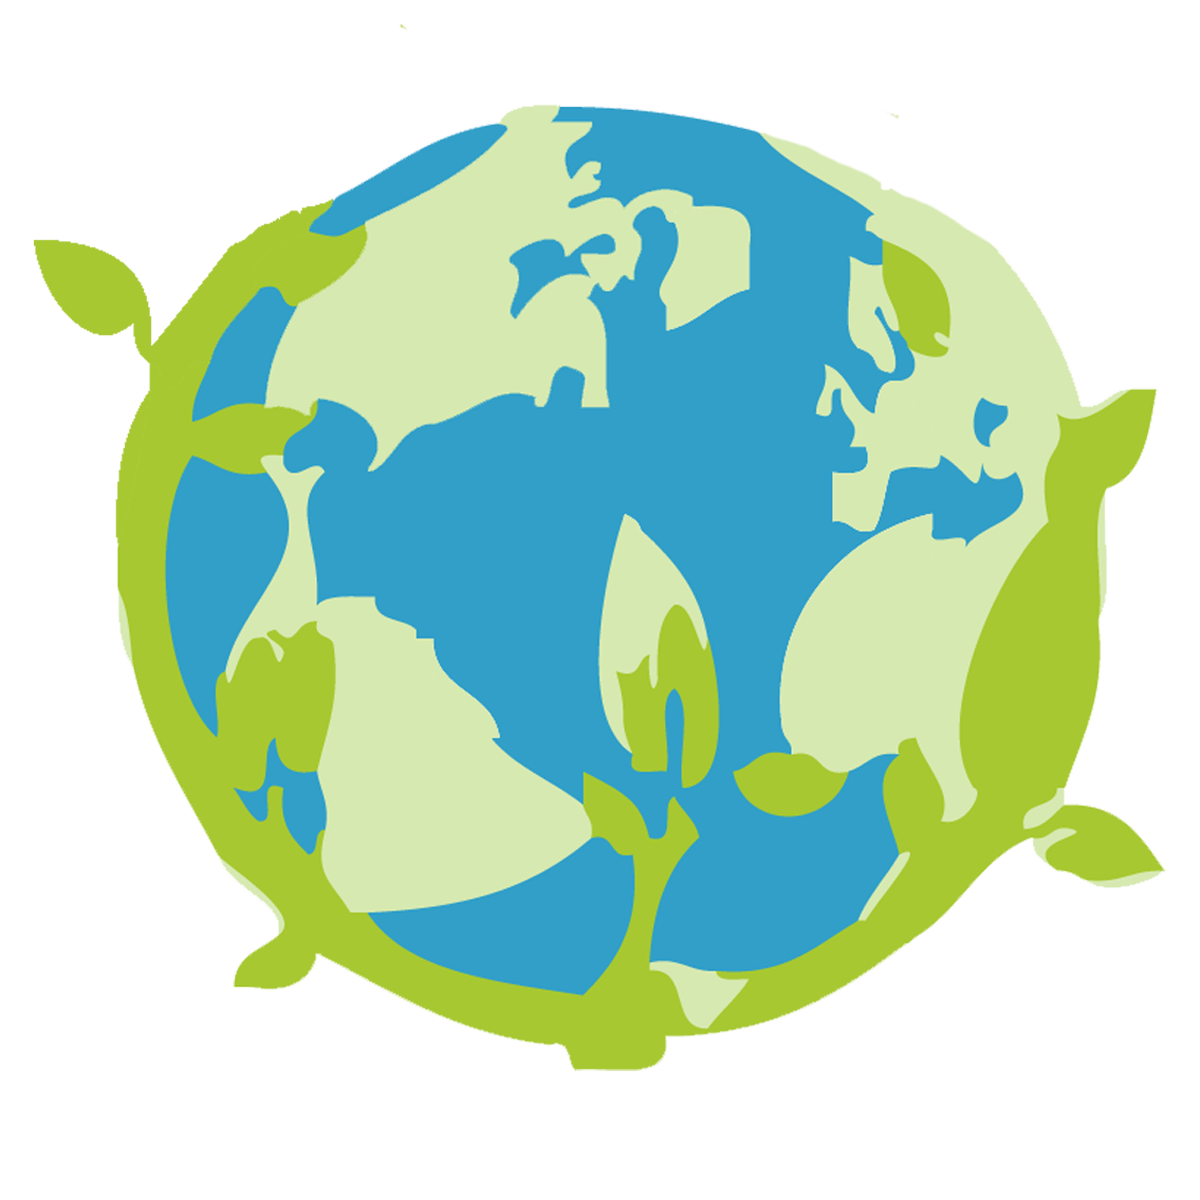 Download Png Earth Day Images Free image #40640